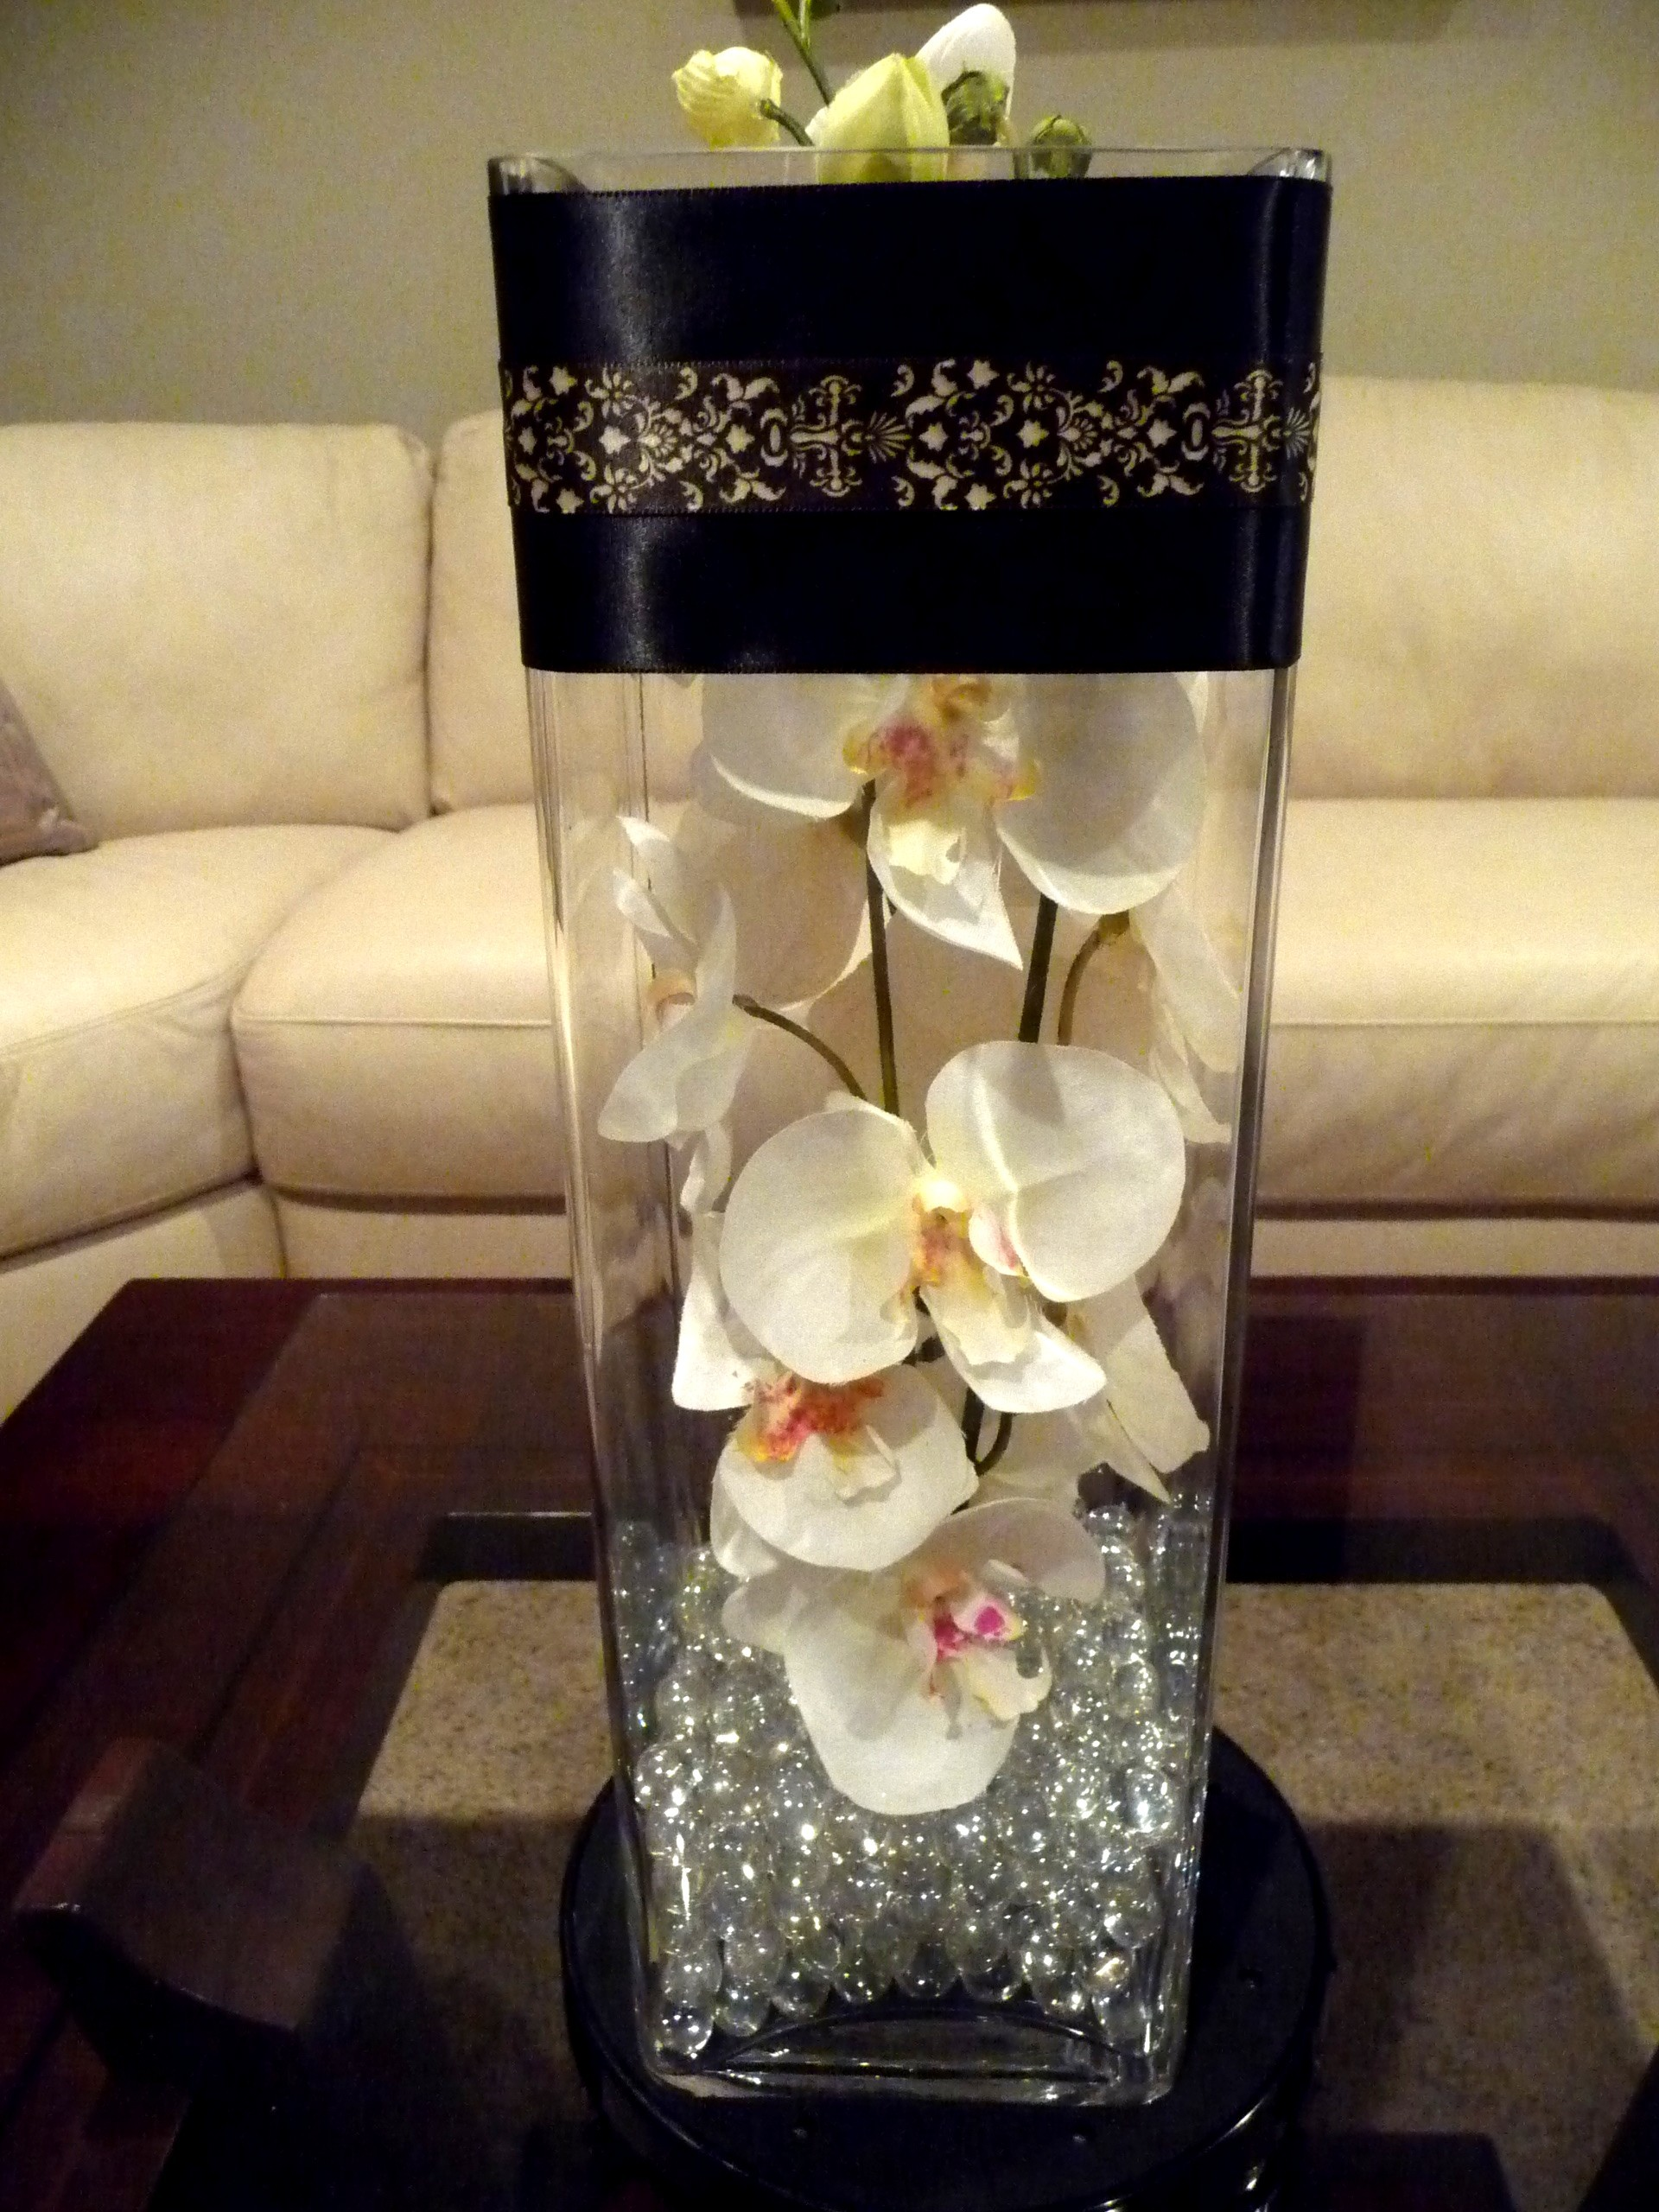 Tall square glass vase filled with acryllic beads and